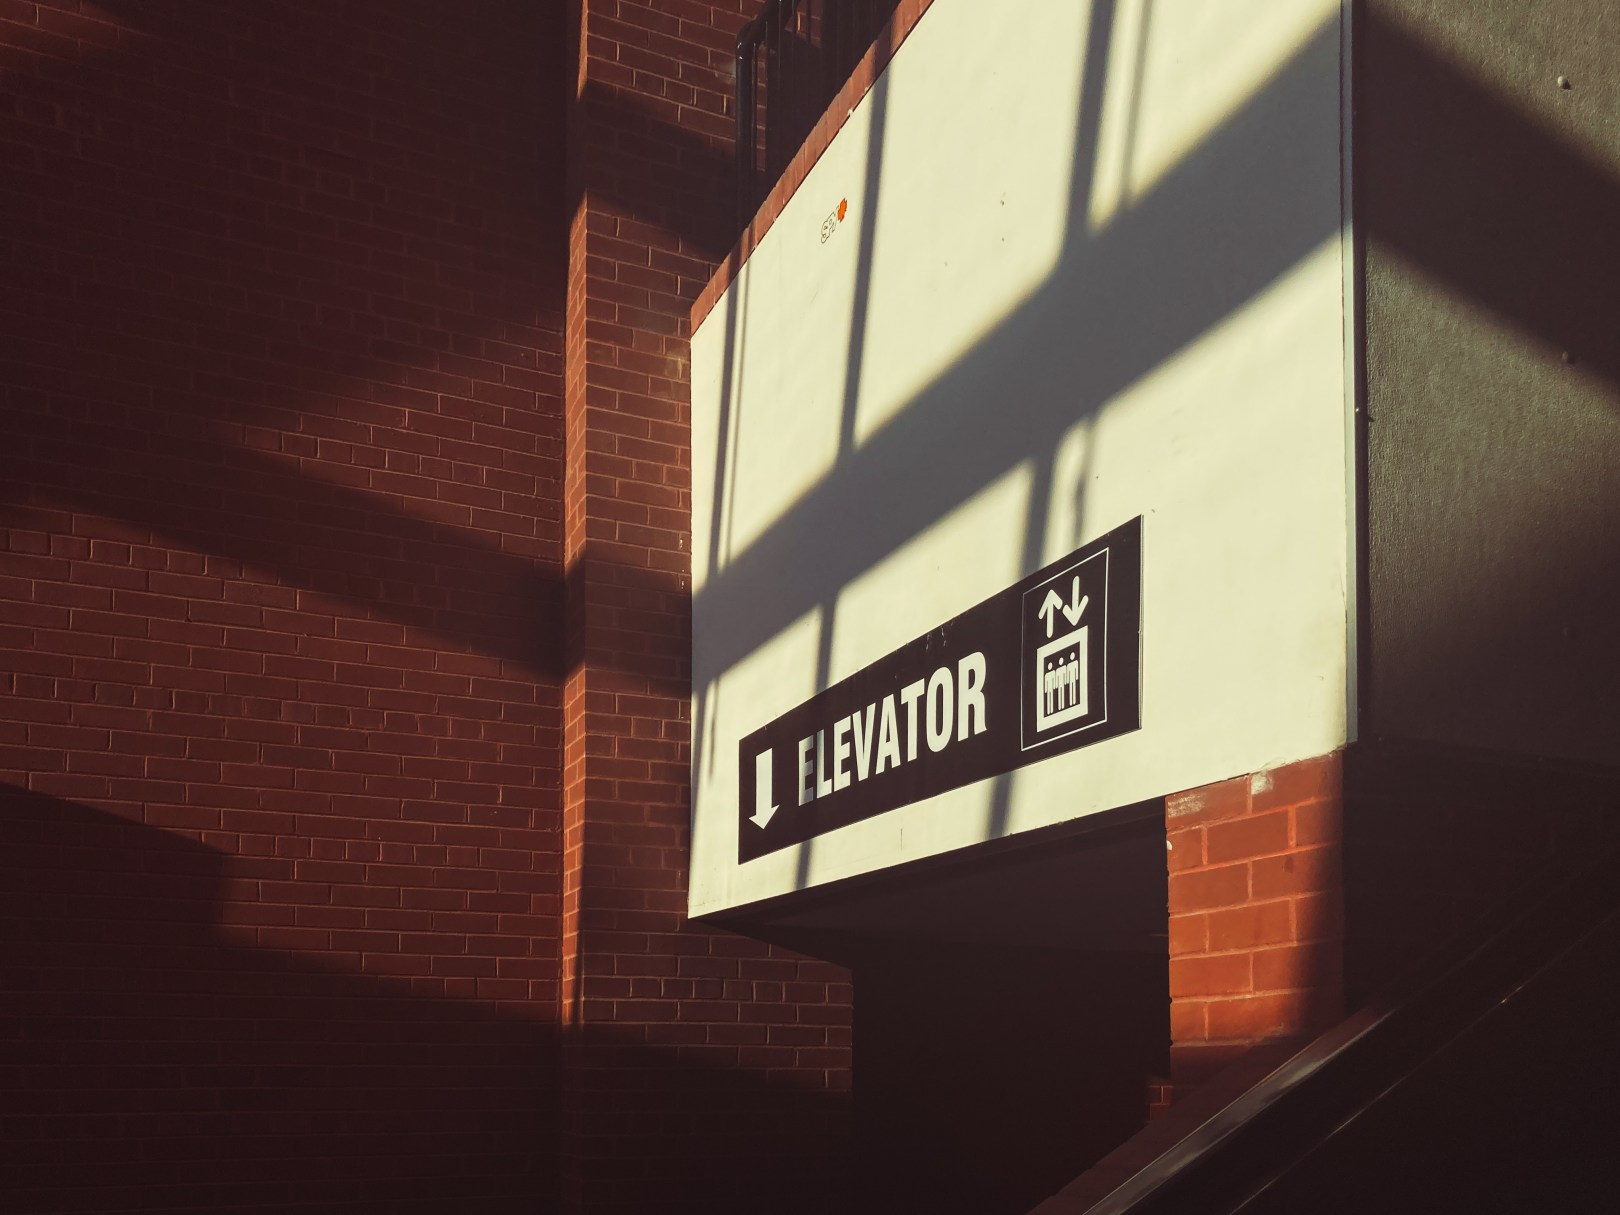 A photo of elevator sign in shadows